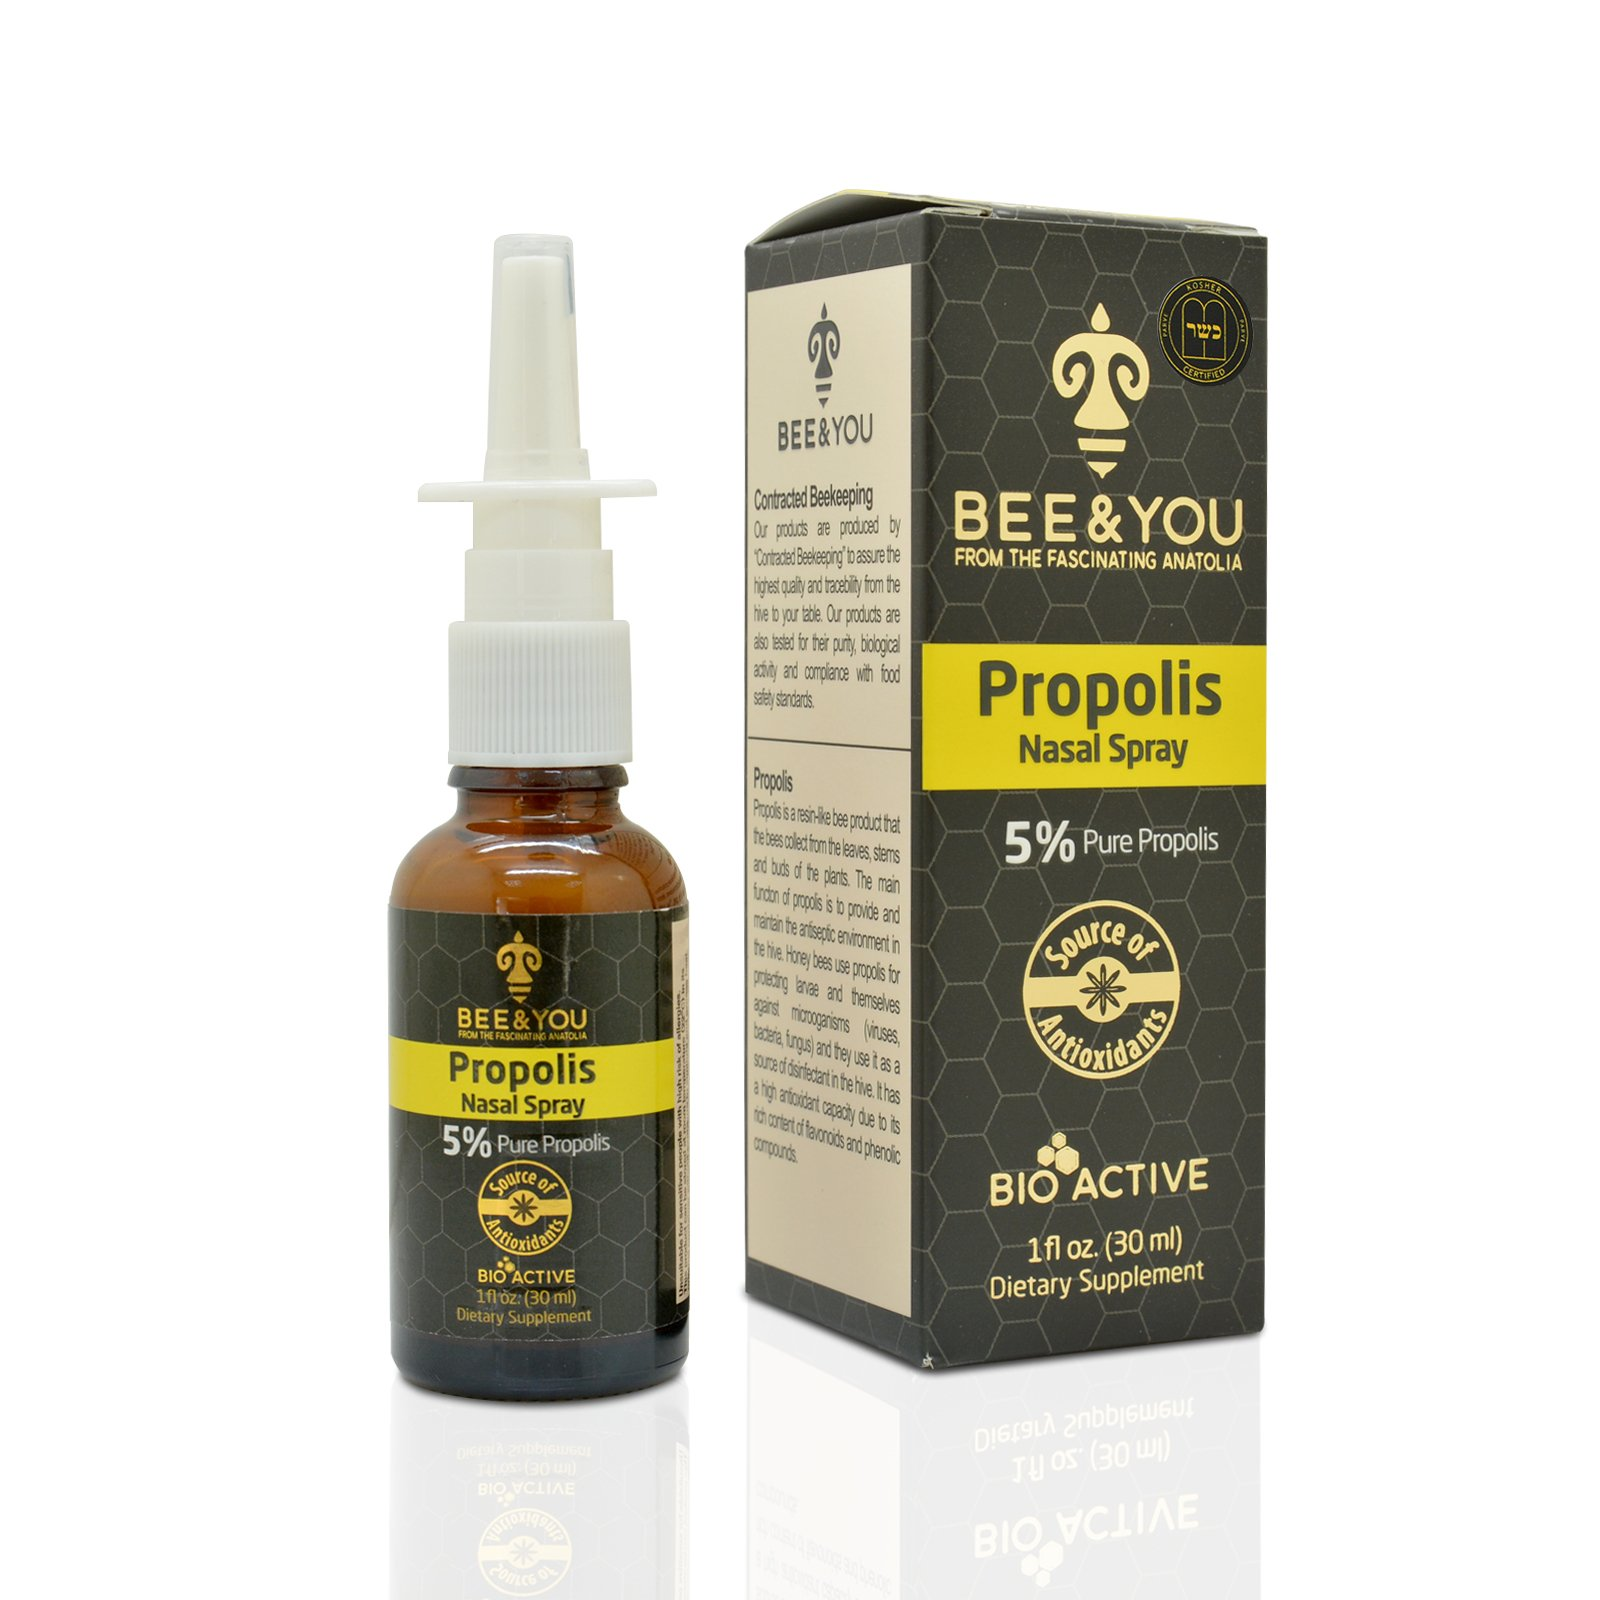 BEE & YOU Propolis Nasal Spray 5% Pure Propolis Alcohol-Free - 1 fl oz